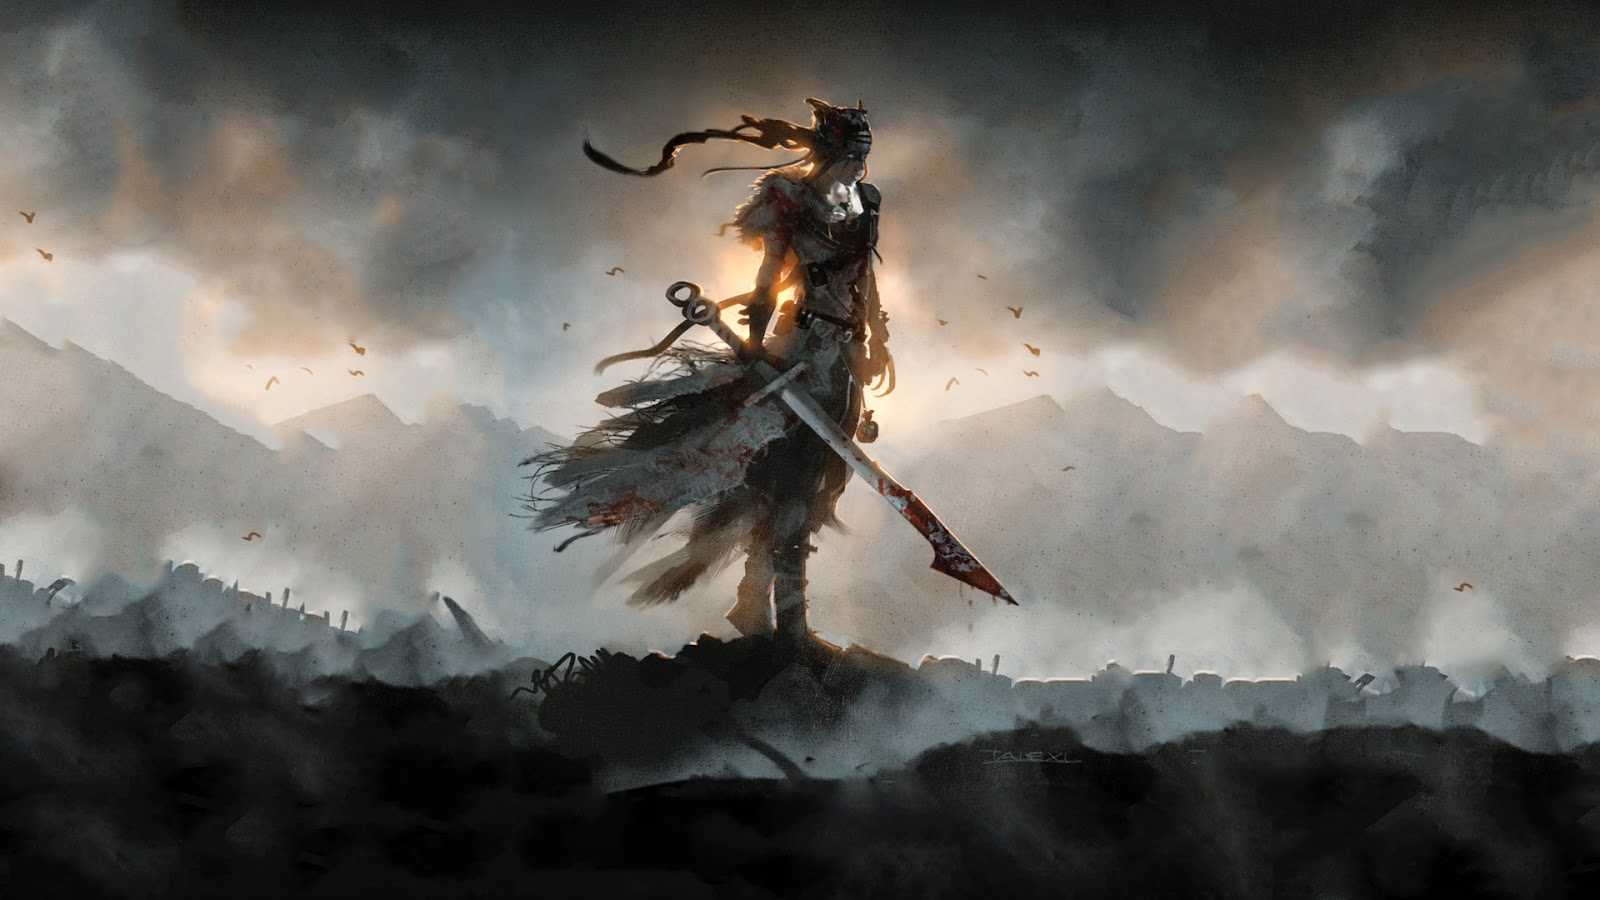 Hellblade ps4 game cool desktop wallpapers cool desktop for Wallpaper wallpaper wallpaper